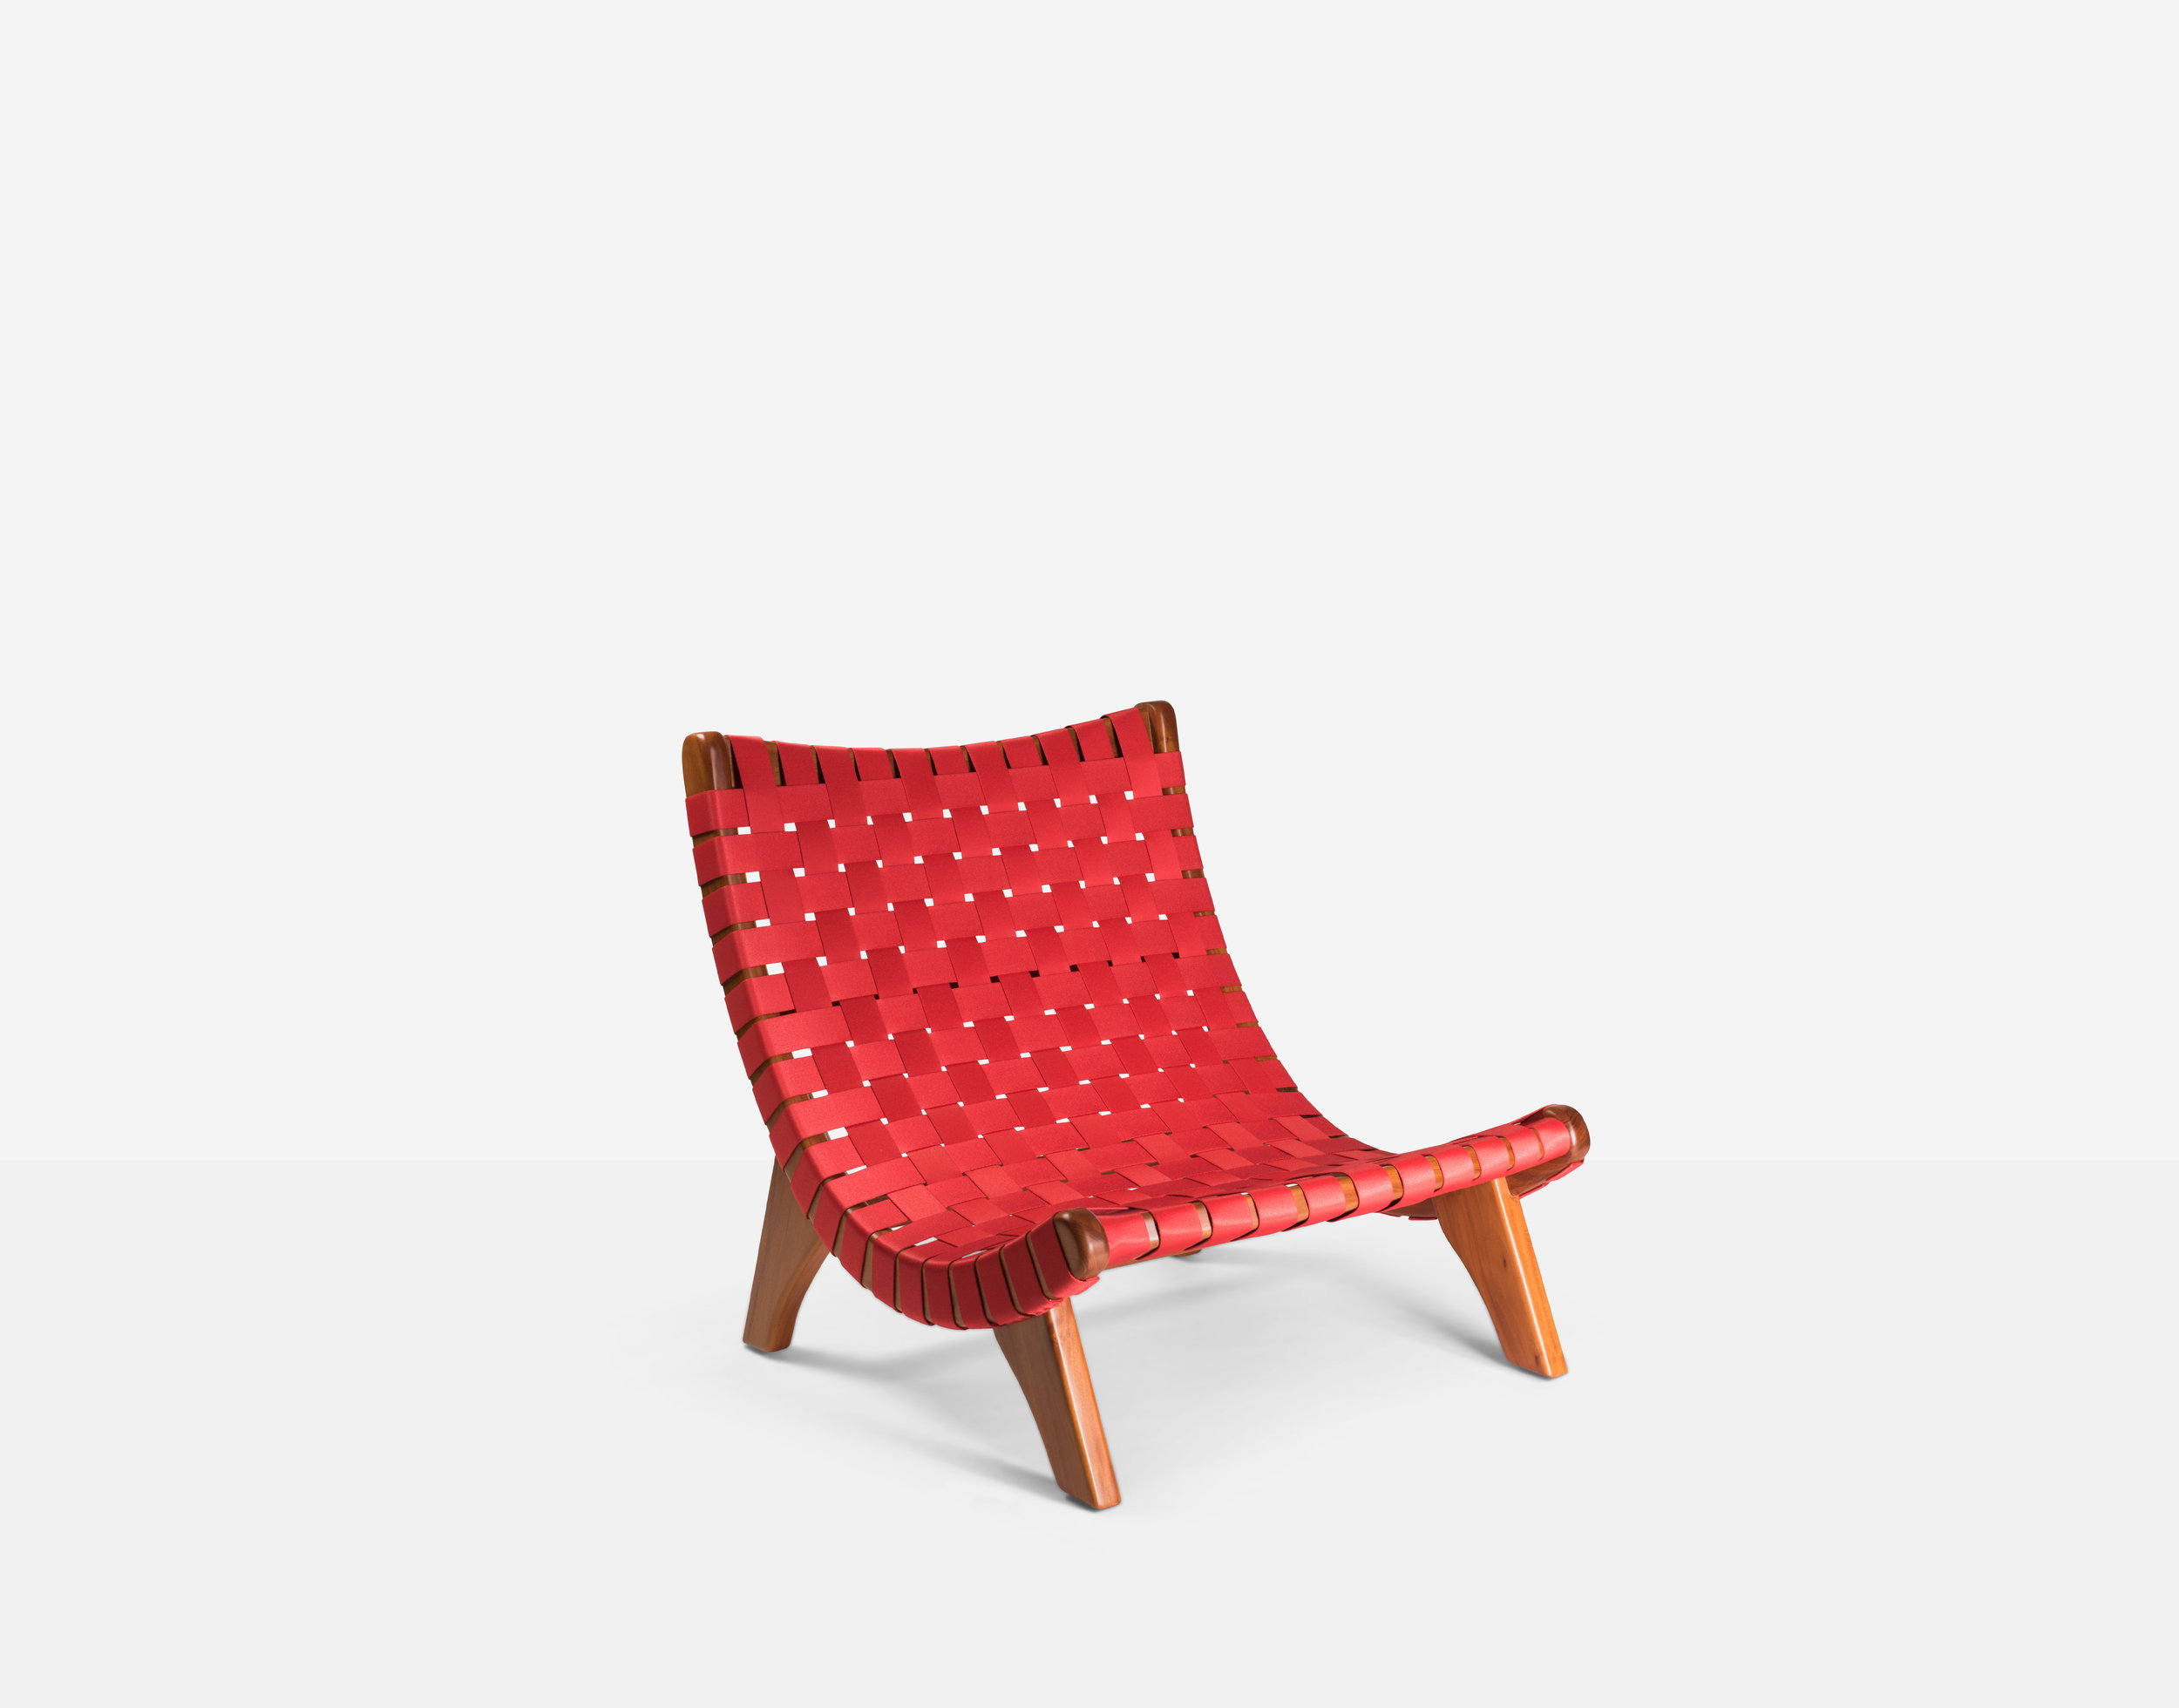 Luteca_MvB_San Miguel-Lounge Chair_Red-Strapping_Mahogany_FP-W.jpg